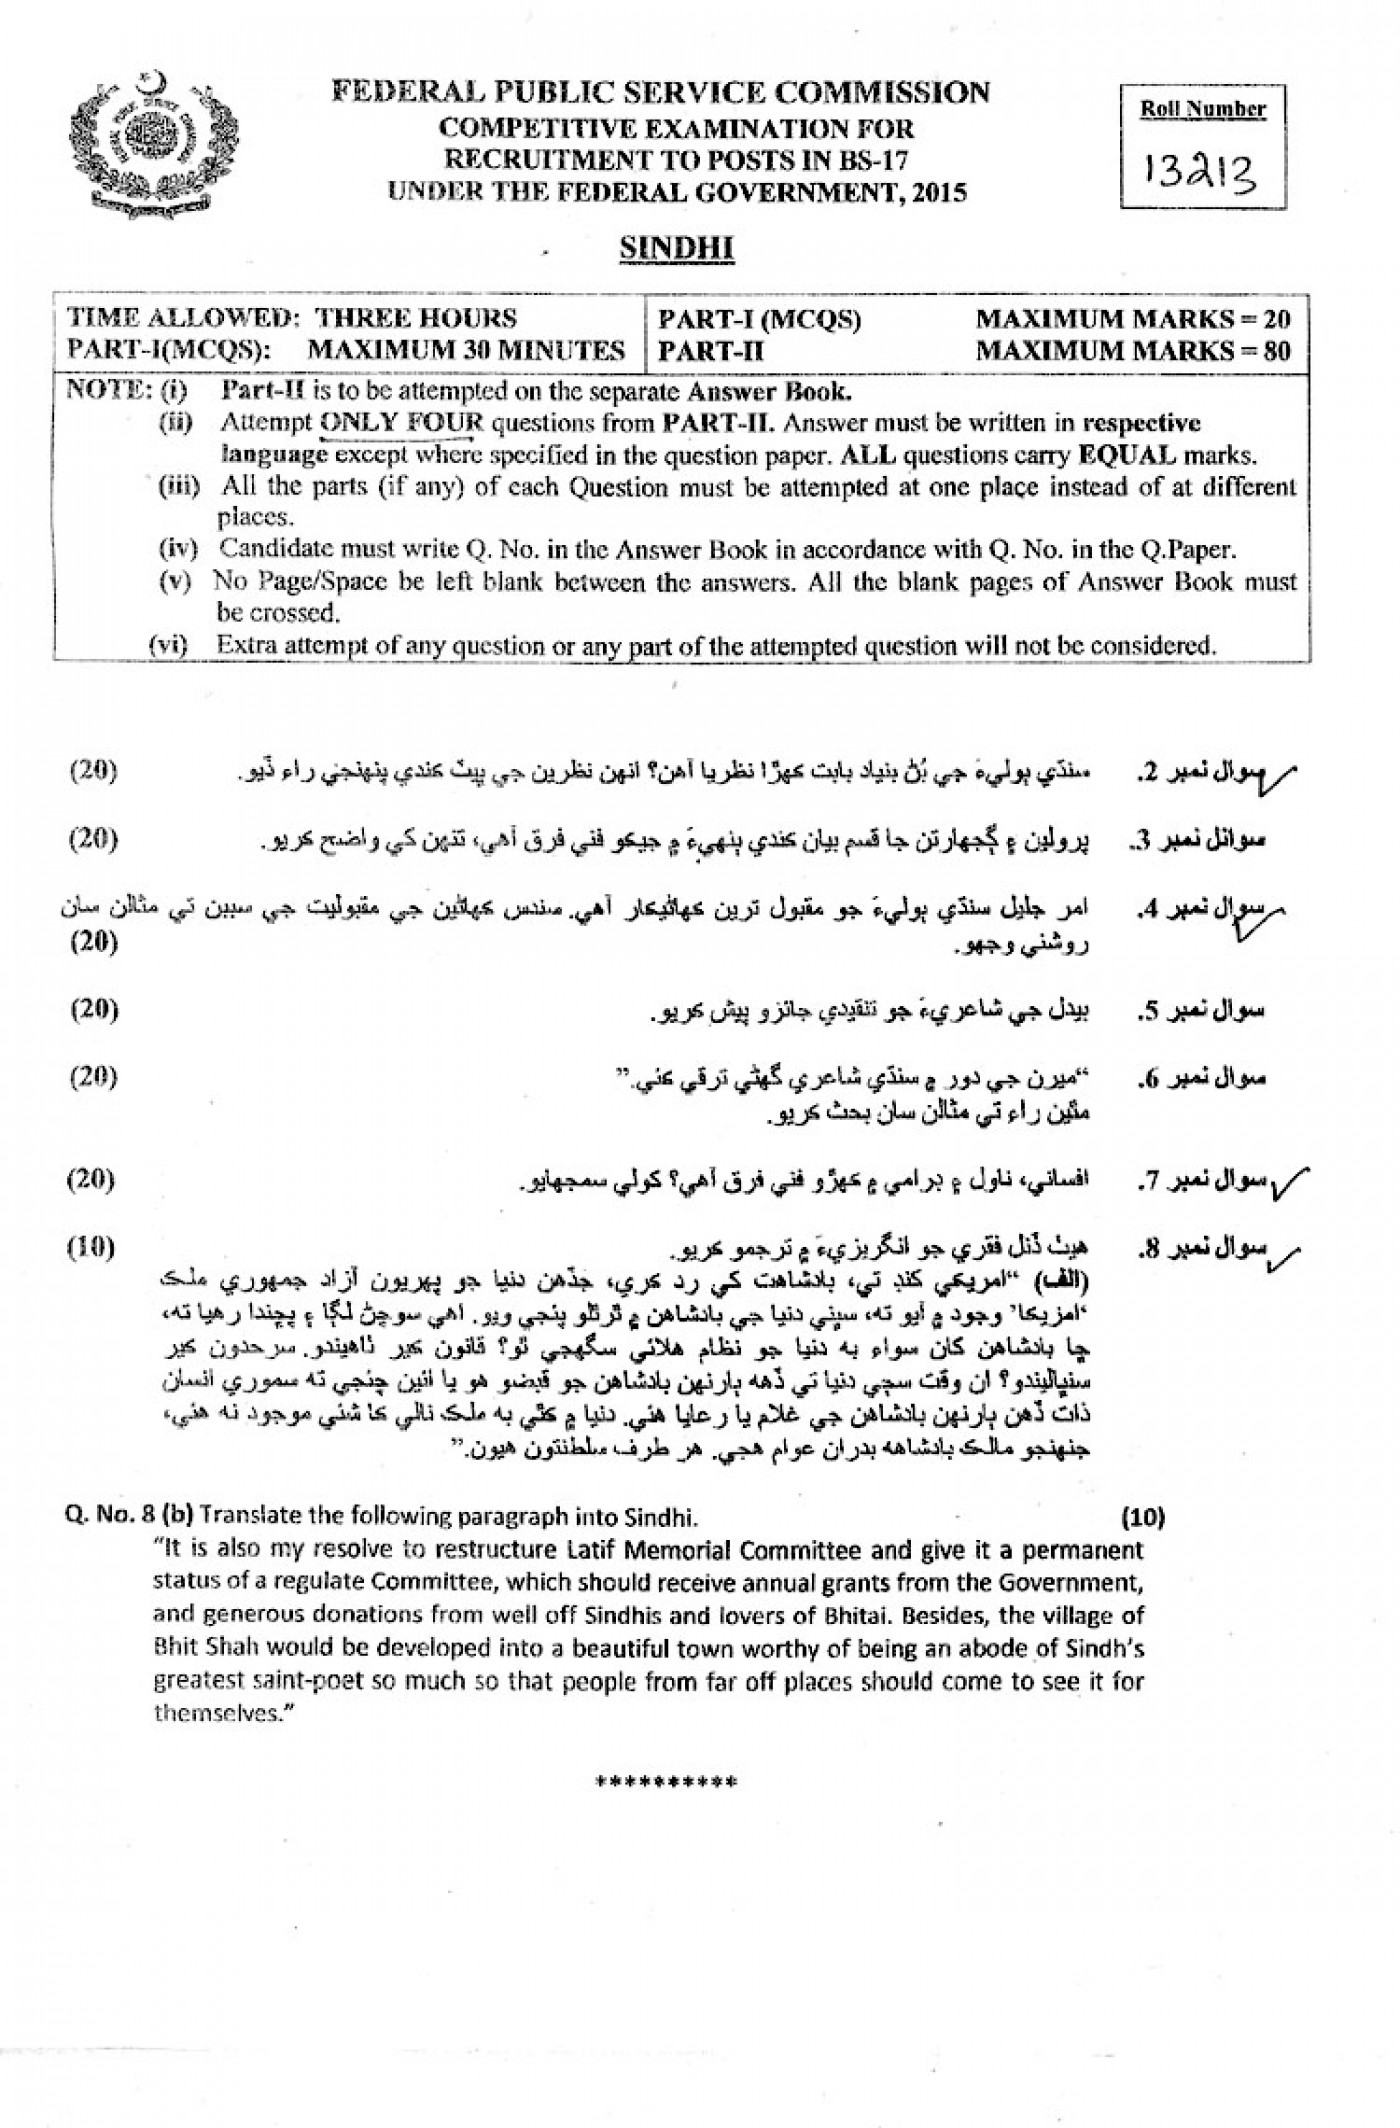 006 Sindhi Essay Impressive Essays For Competitive Exams Book Class 12 1400